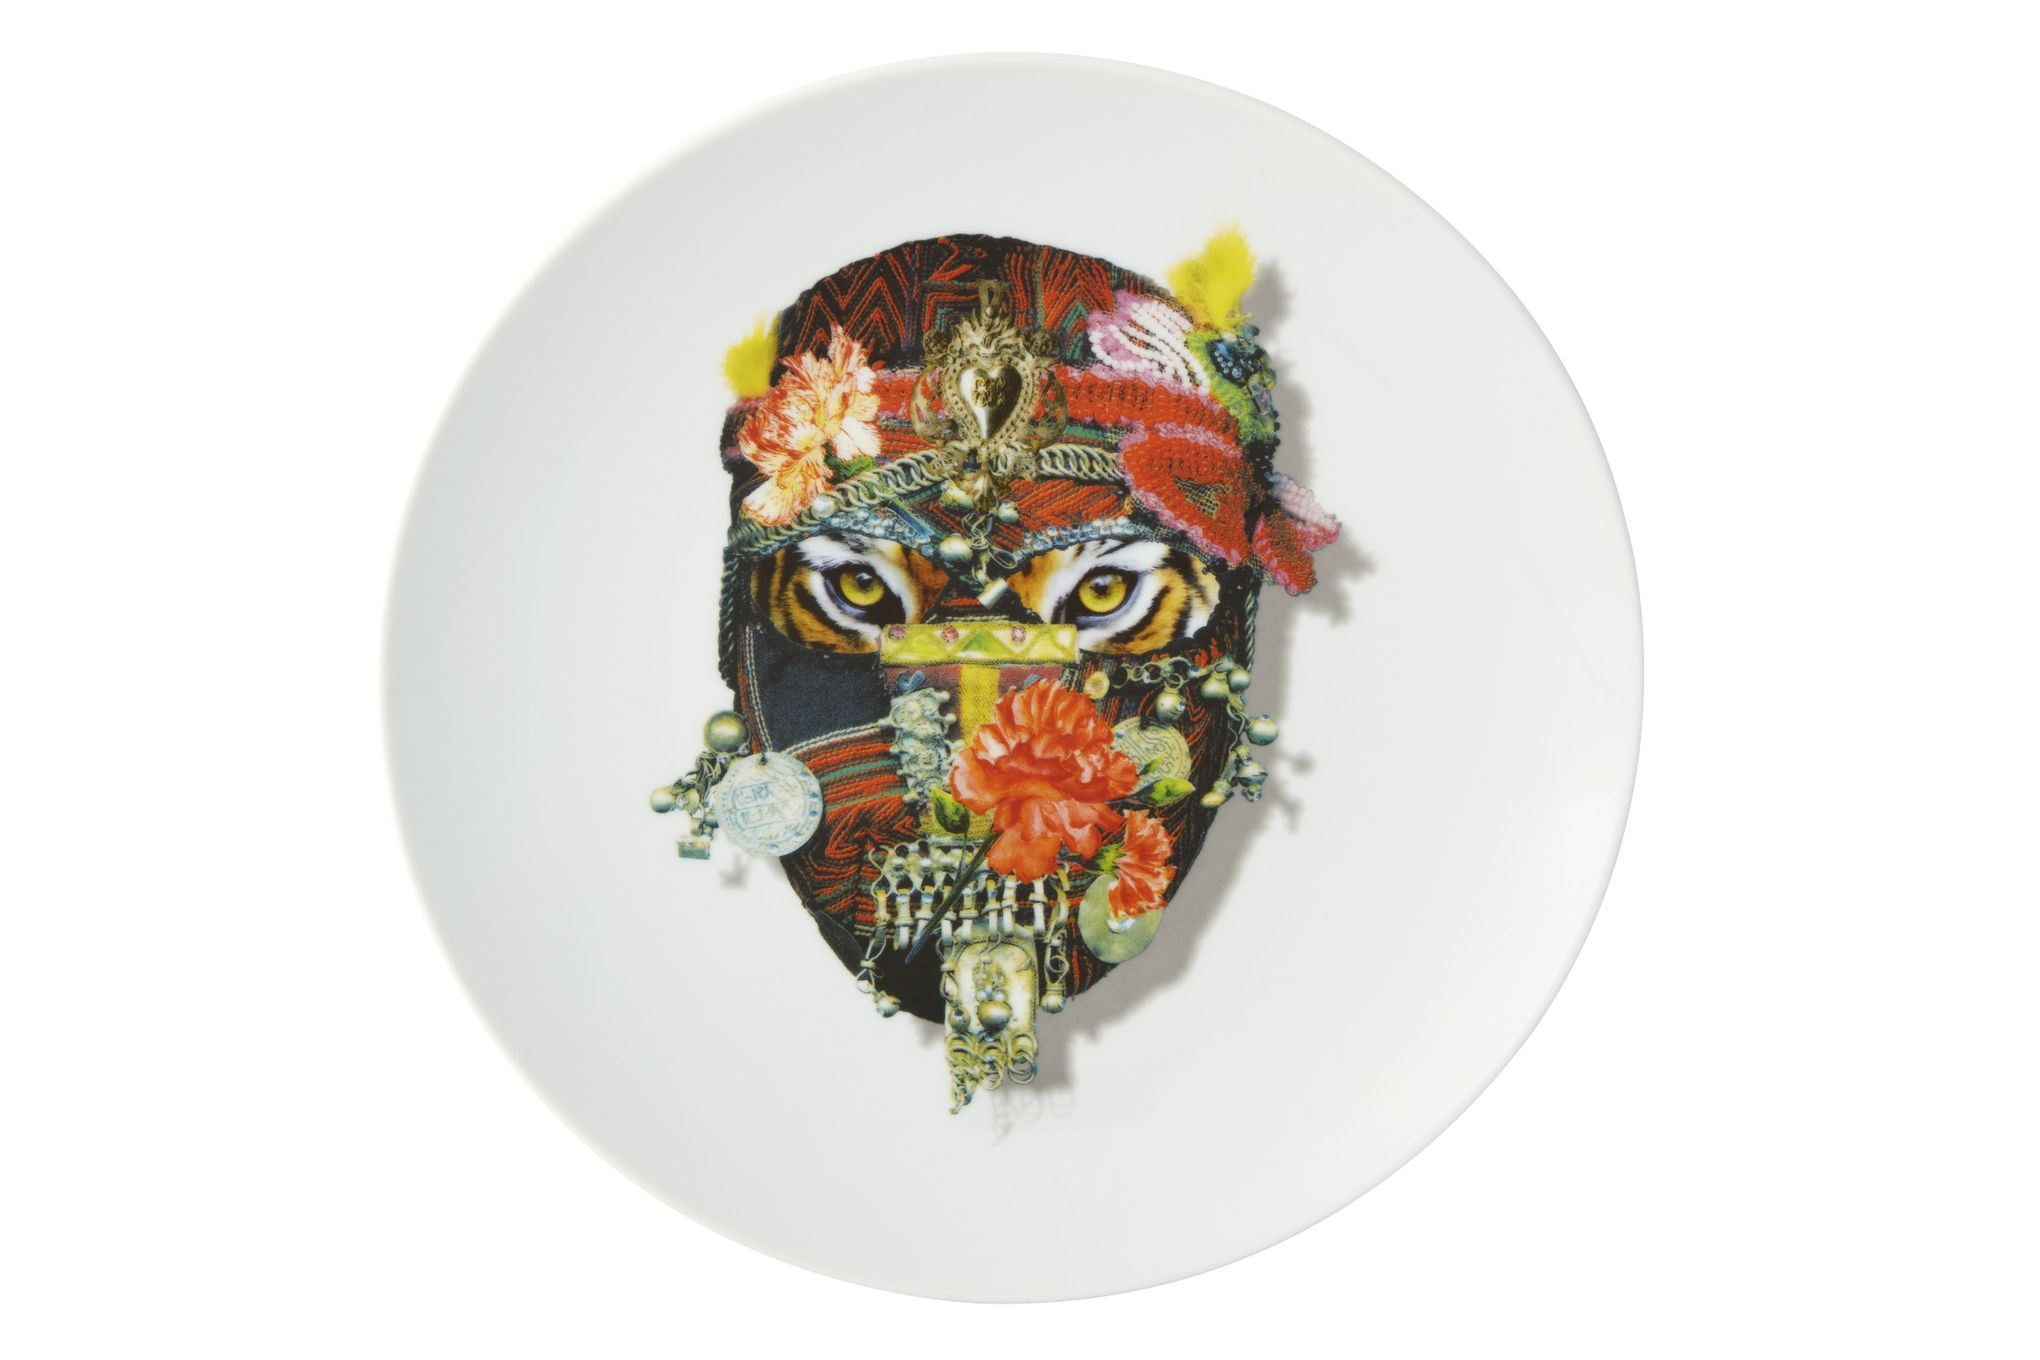 Christian Lacroix Love Who You Want Plate - Giftware Mister Tiger - Gift Boxed 23cm thumb 1